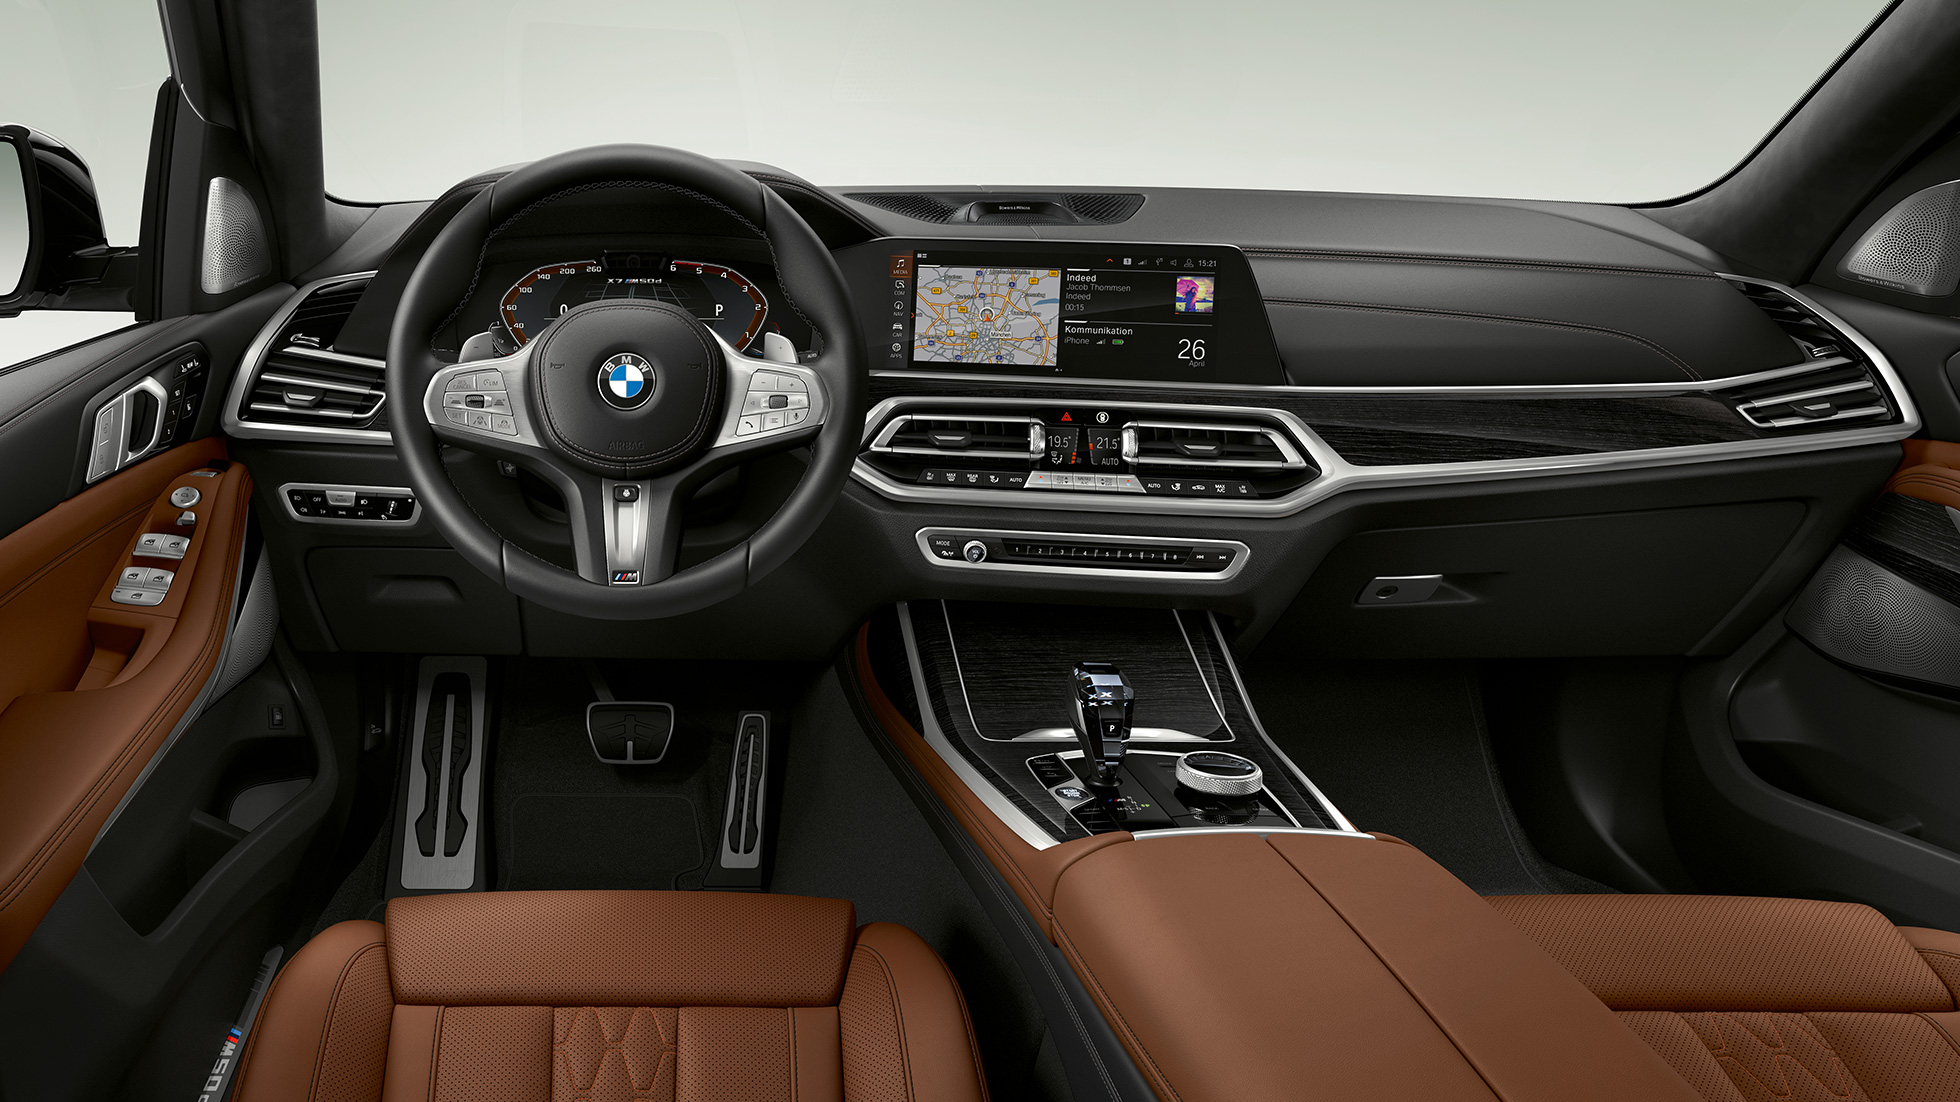 Bmw X7 Information And Details Bmw Egcom